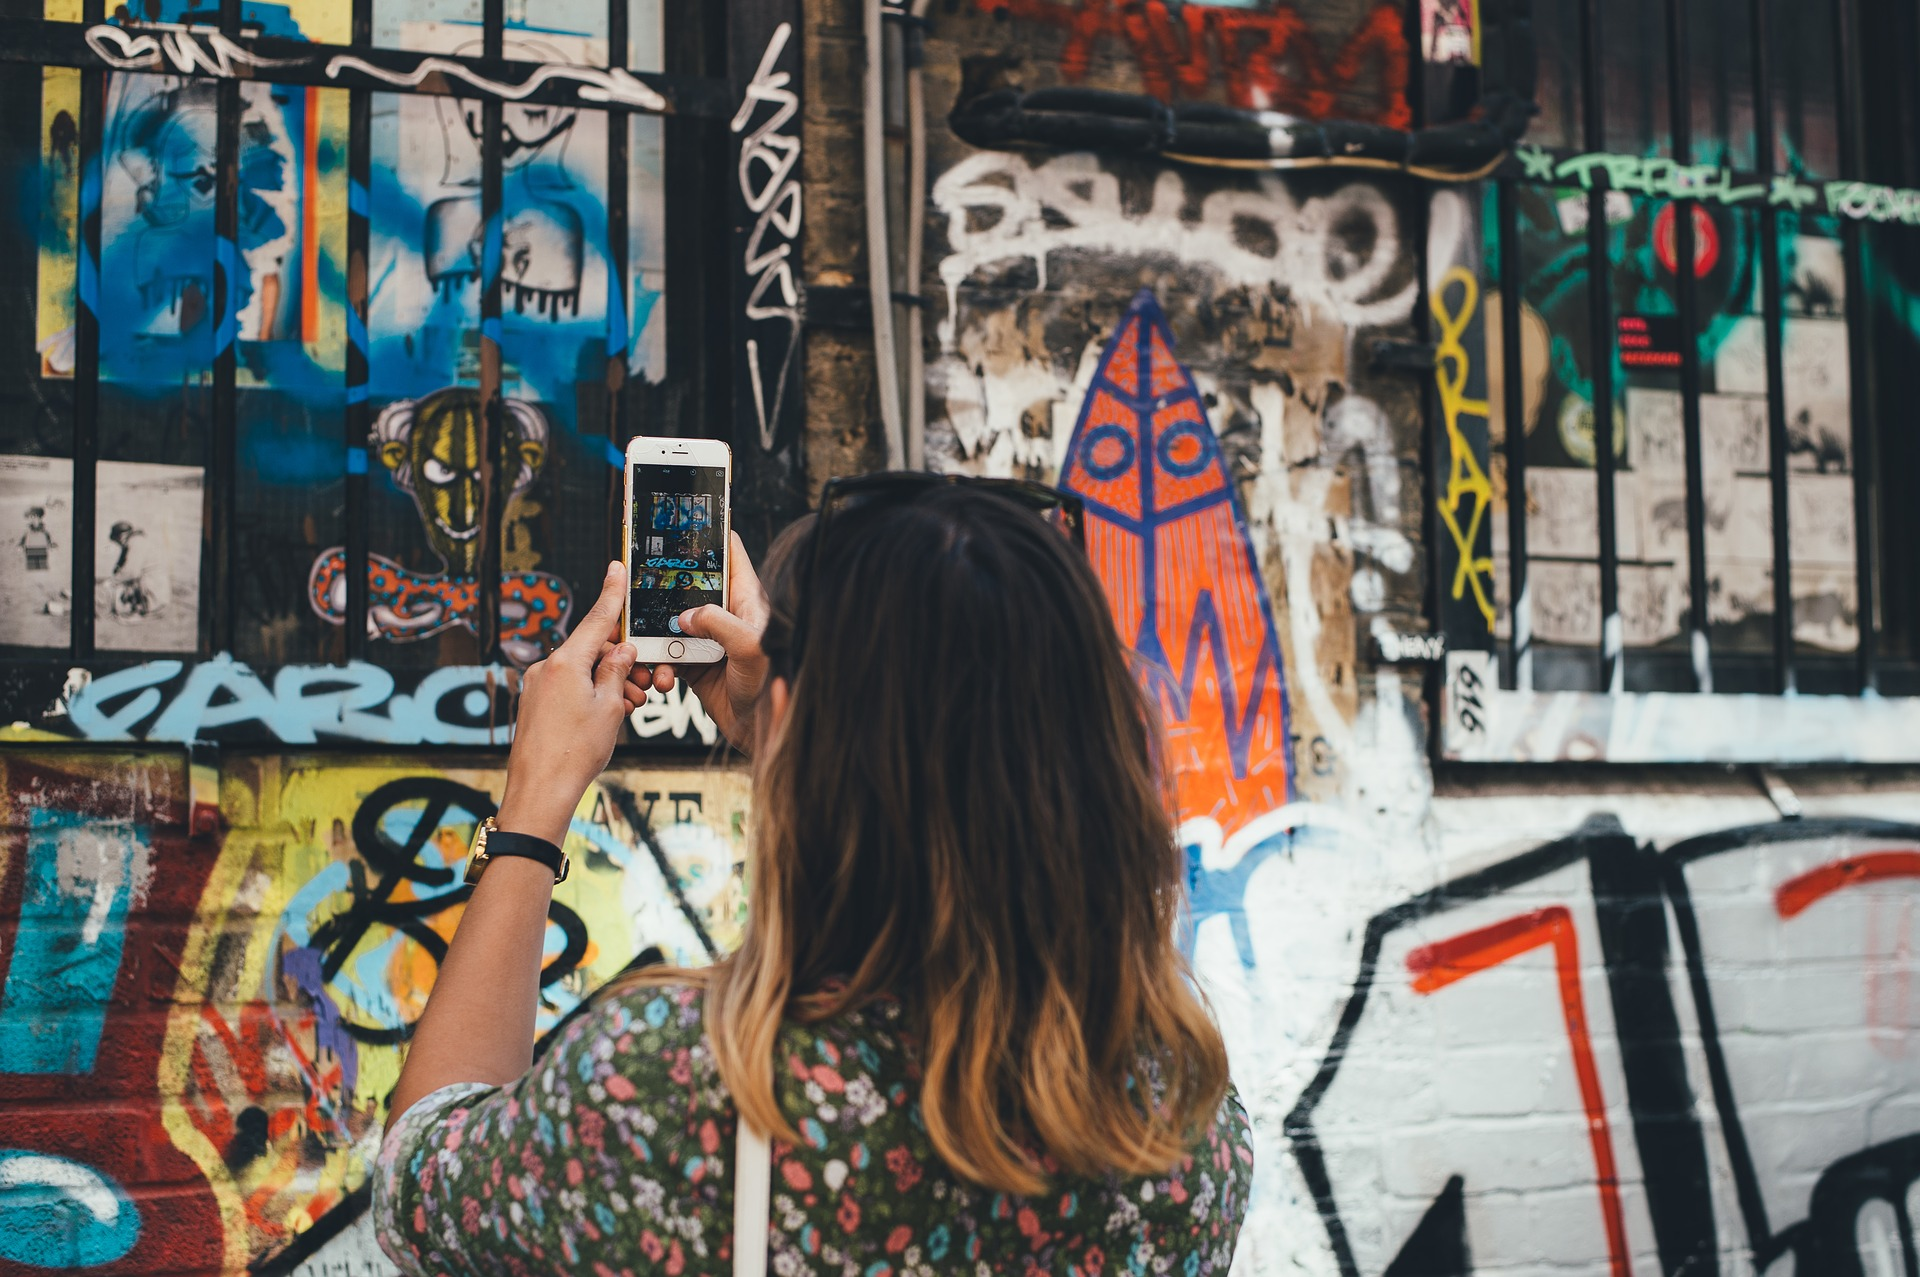 Extend Your Blog's Reach with Instagram